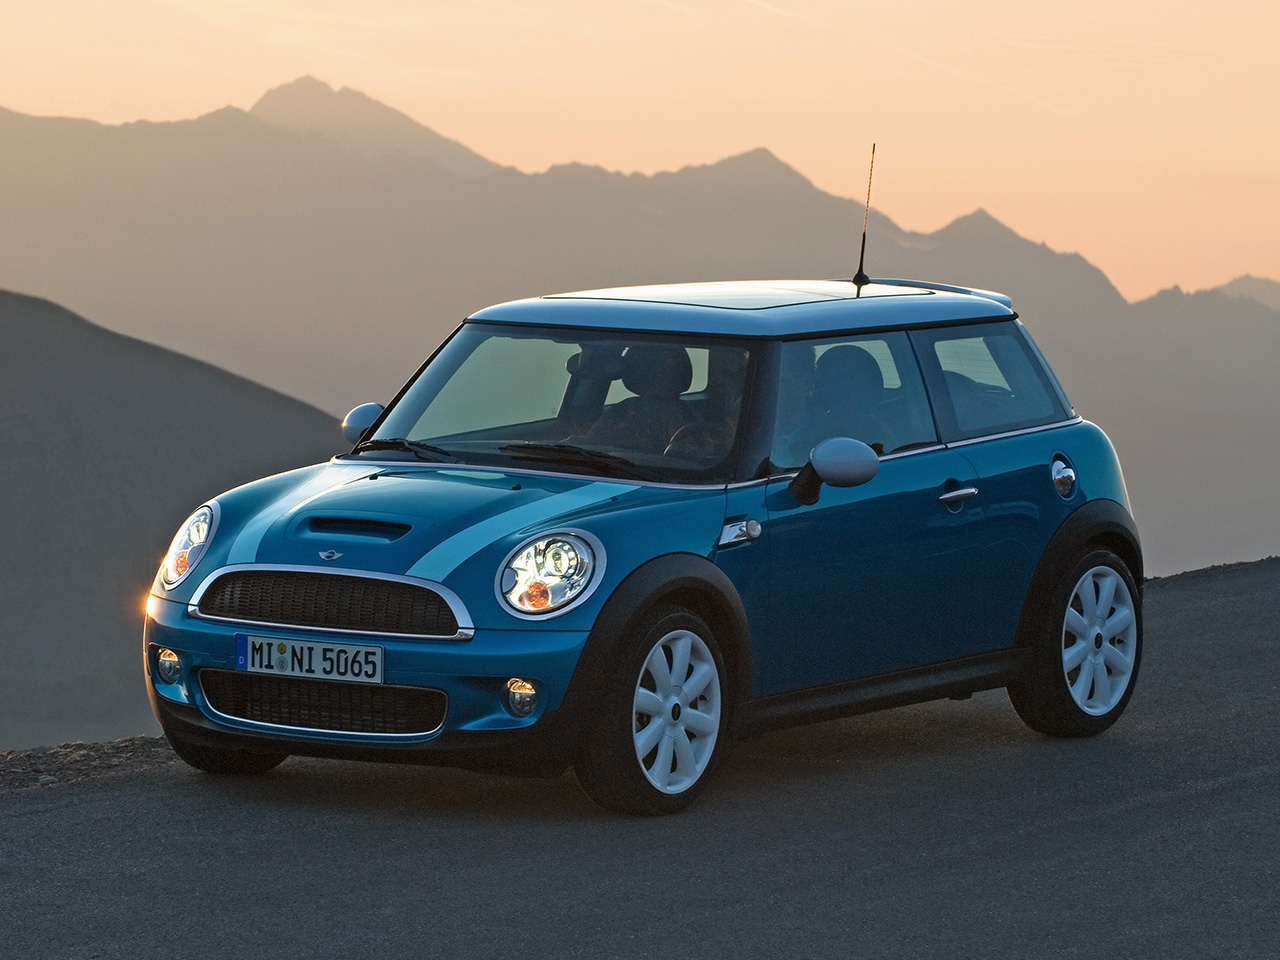 2007 Mini Cooper S Front And Side 1280x960